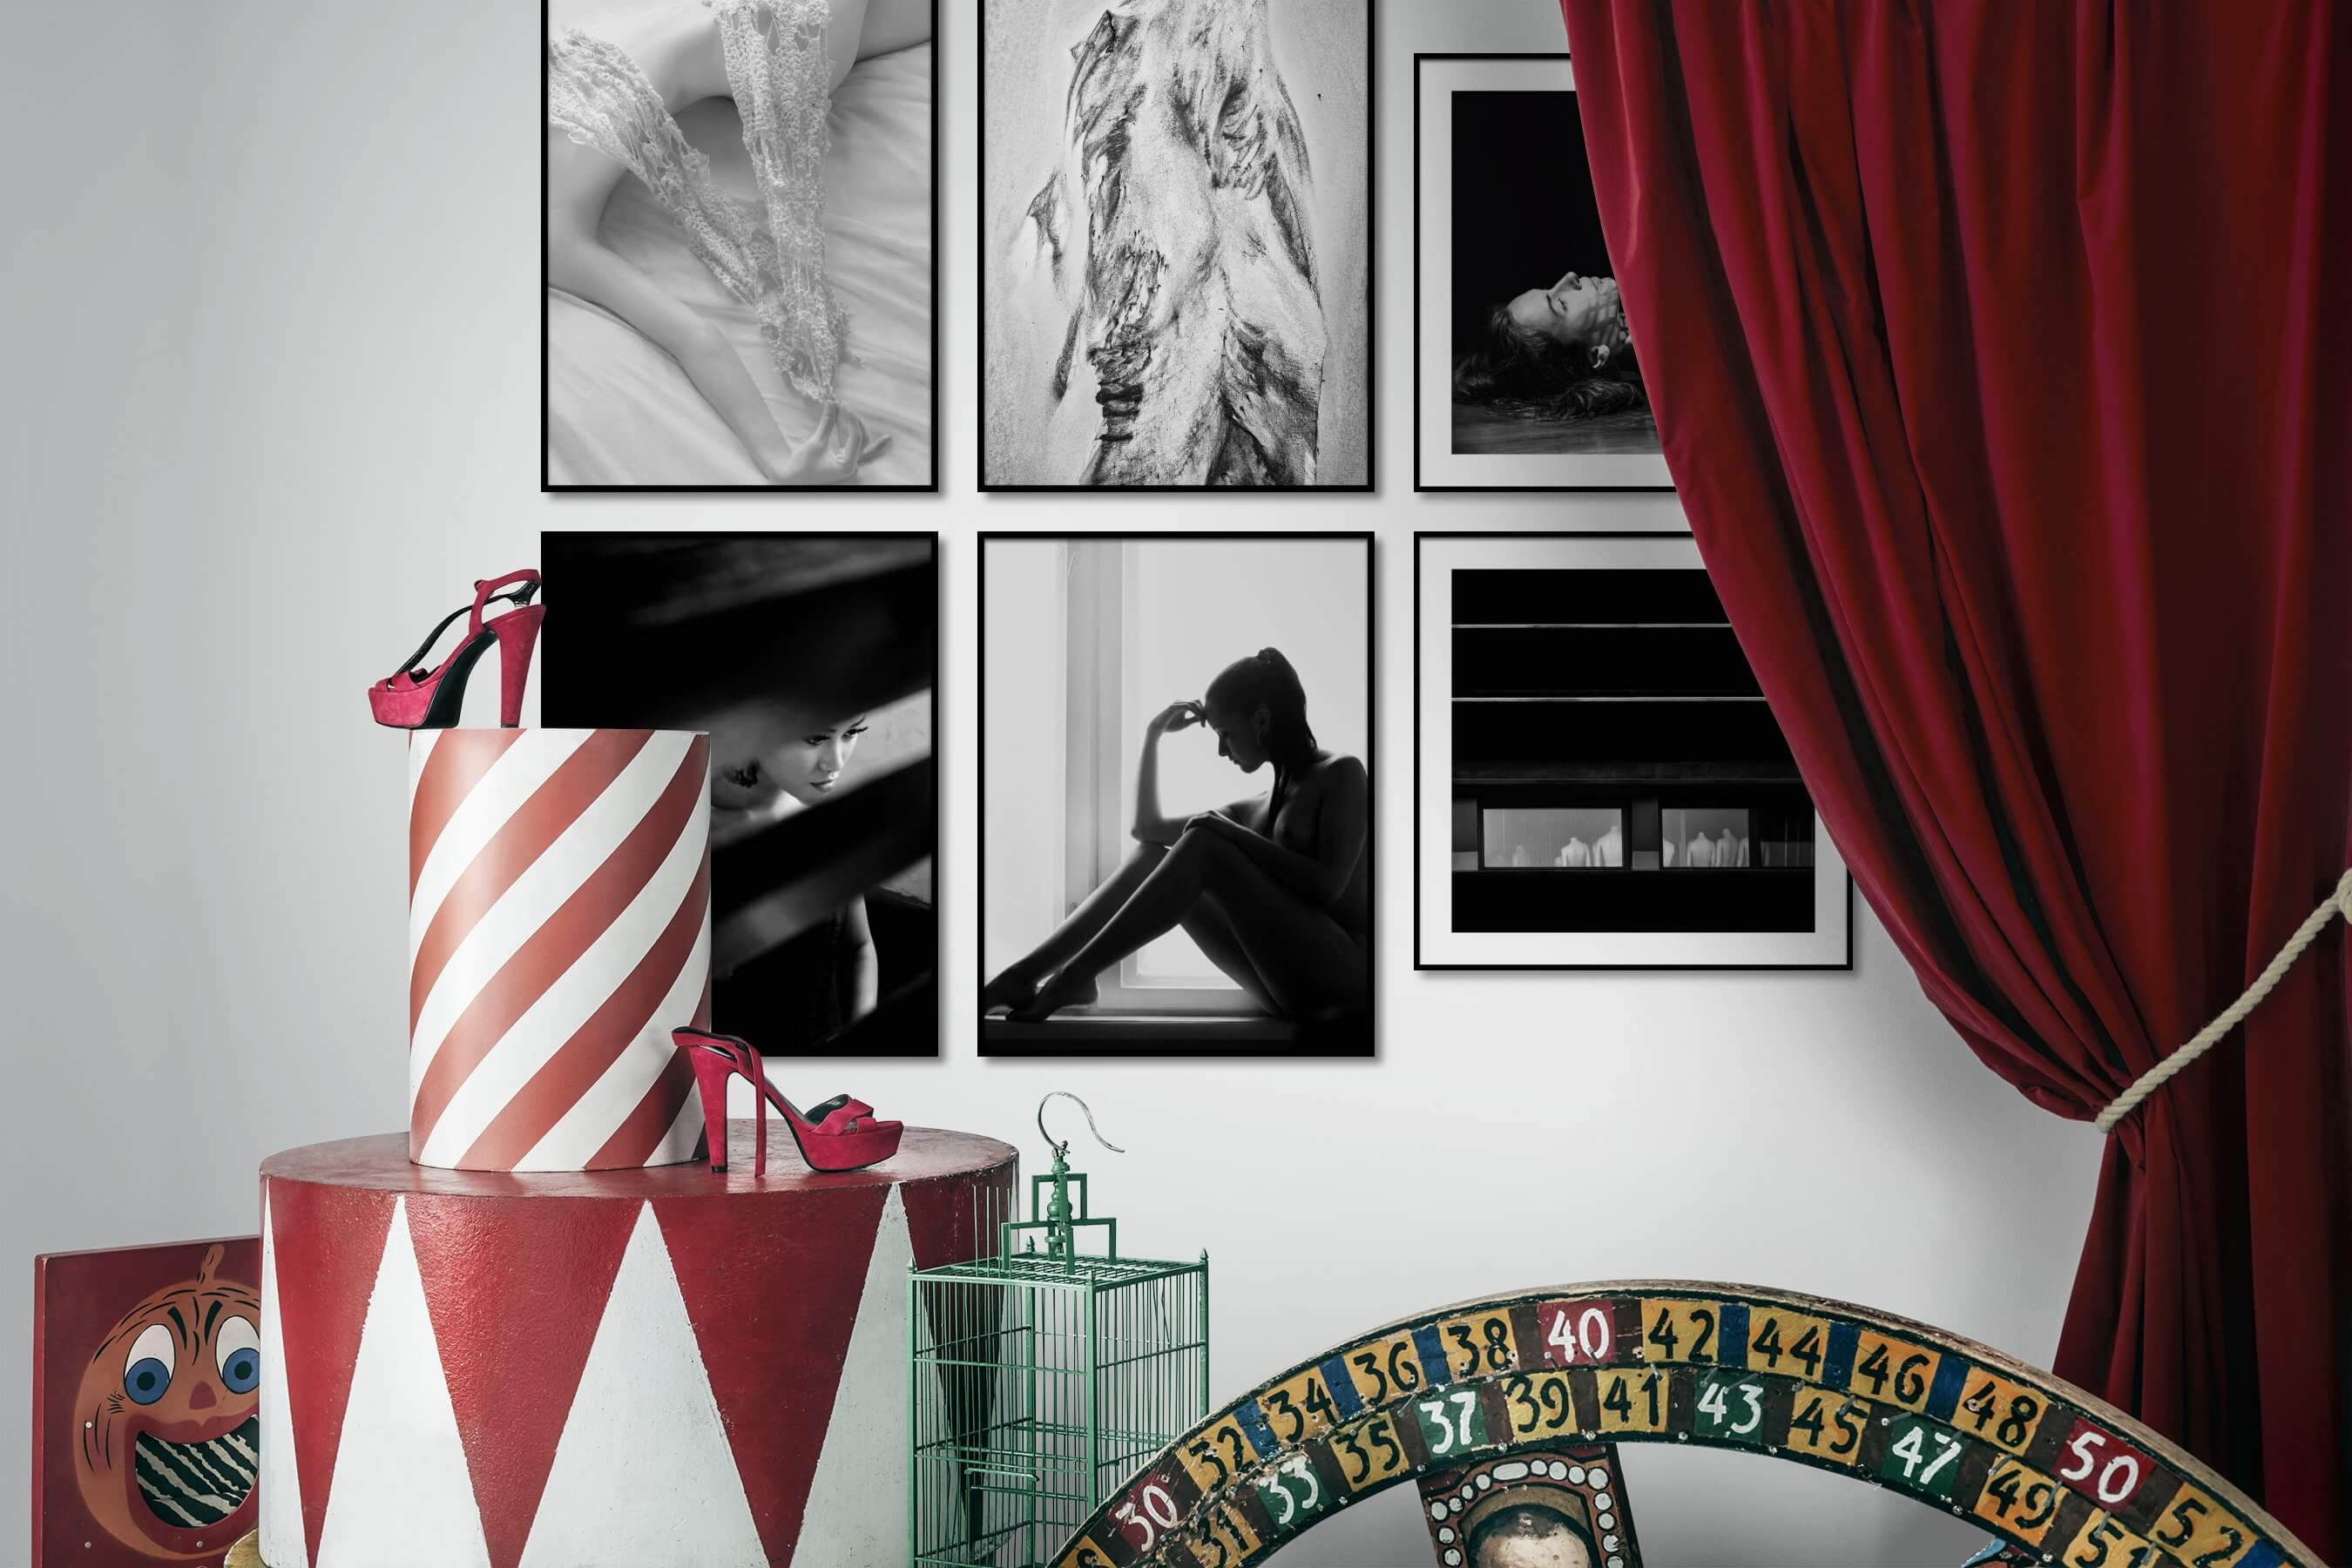 Gallery wall idea with six framed pictures arranged on a wall depicting Fashion & Beauty, Black & White, For the Moderate, Nature, Bold, Dark Tones, and Artsy